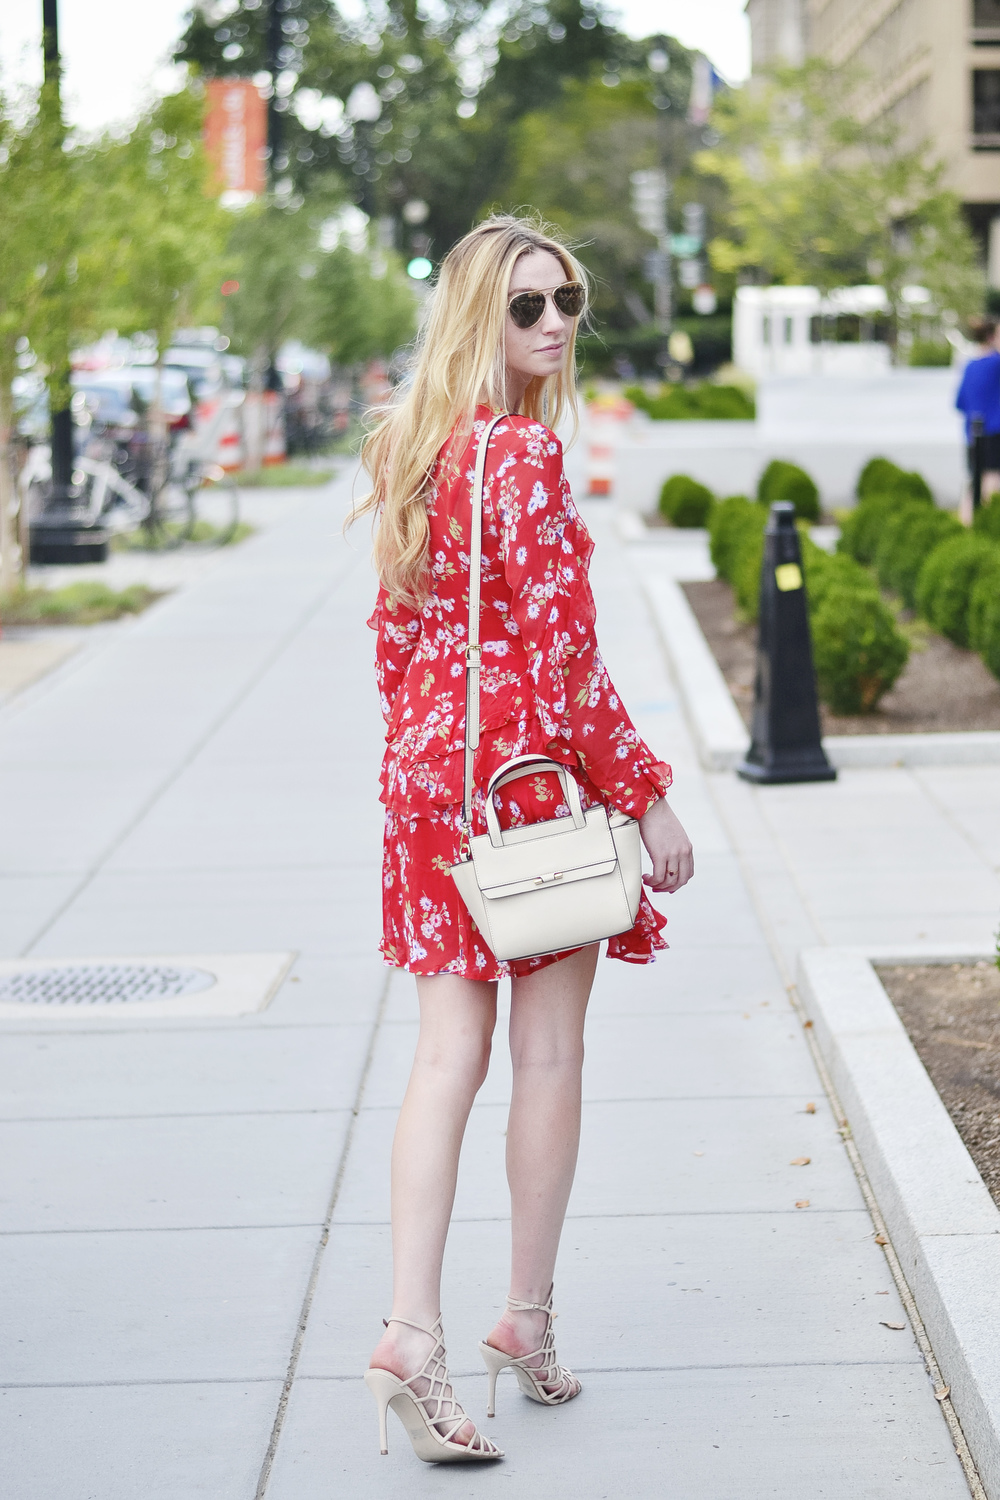 Blogger Red Dress Outfit (via Chic Now)